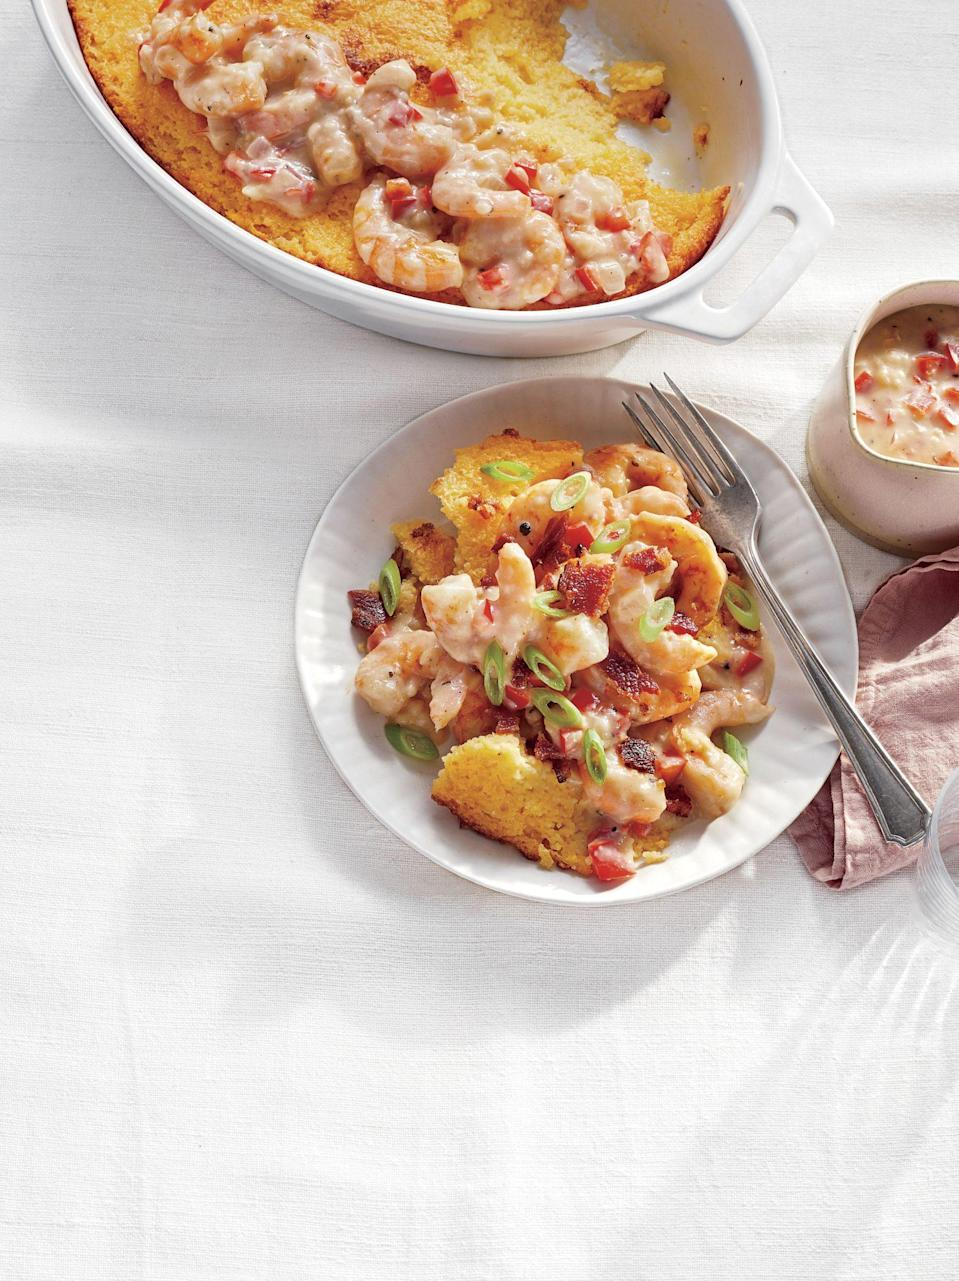 """<p><strong>Recipe: <a href=""""https://www.southernliving.com/recipes/shrimp-and-grits-casserole"""" rel=""""nofollow noopener"""" target=""""_blank"""" data-ylk=""""slk:Shrimp and Grits Casserole"""" class=""""link rapid-noclick-resp"""">Shrimp and Grits Casserole</a></strong></p> <p>Treat Mama to the special meal she deserves this Mother's Day by putting this casserole version of classic shrimp and grits on the menu. </p>"""